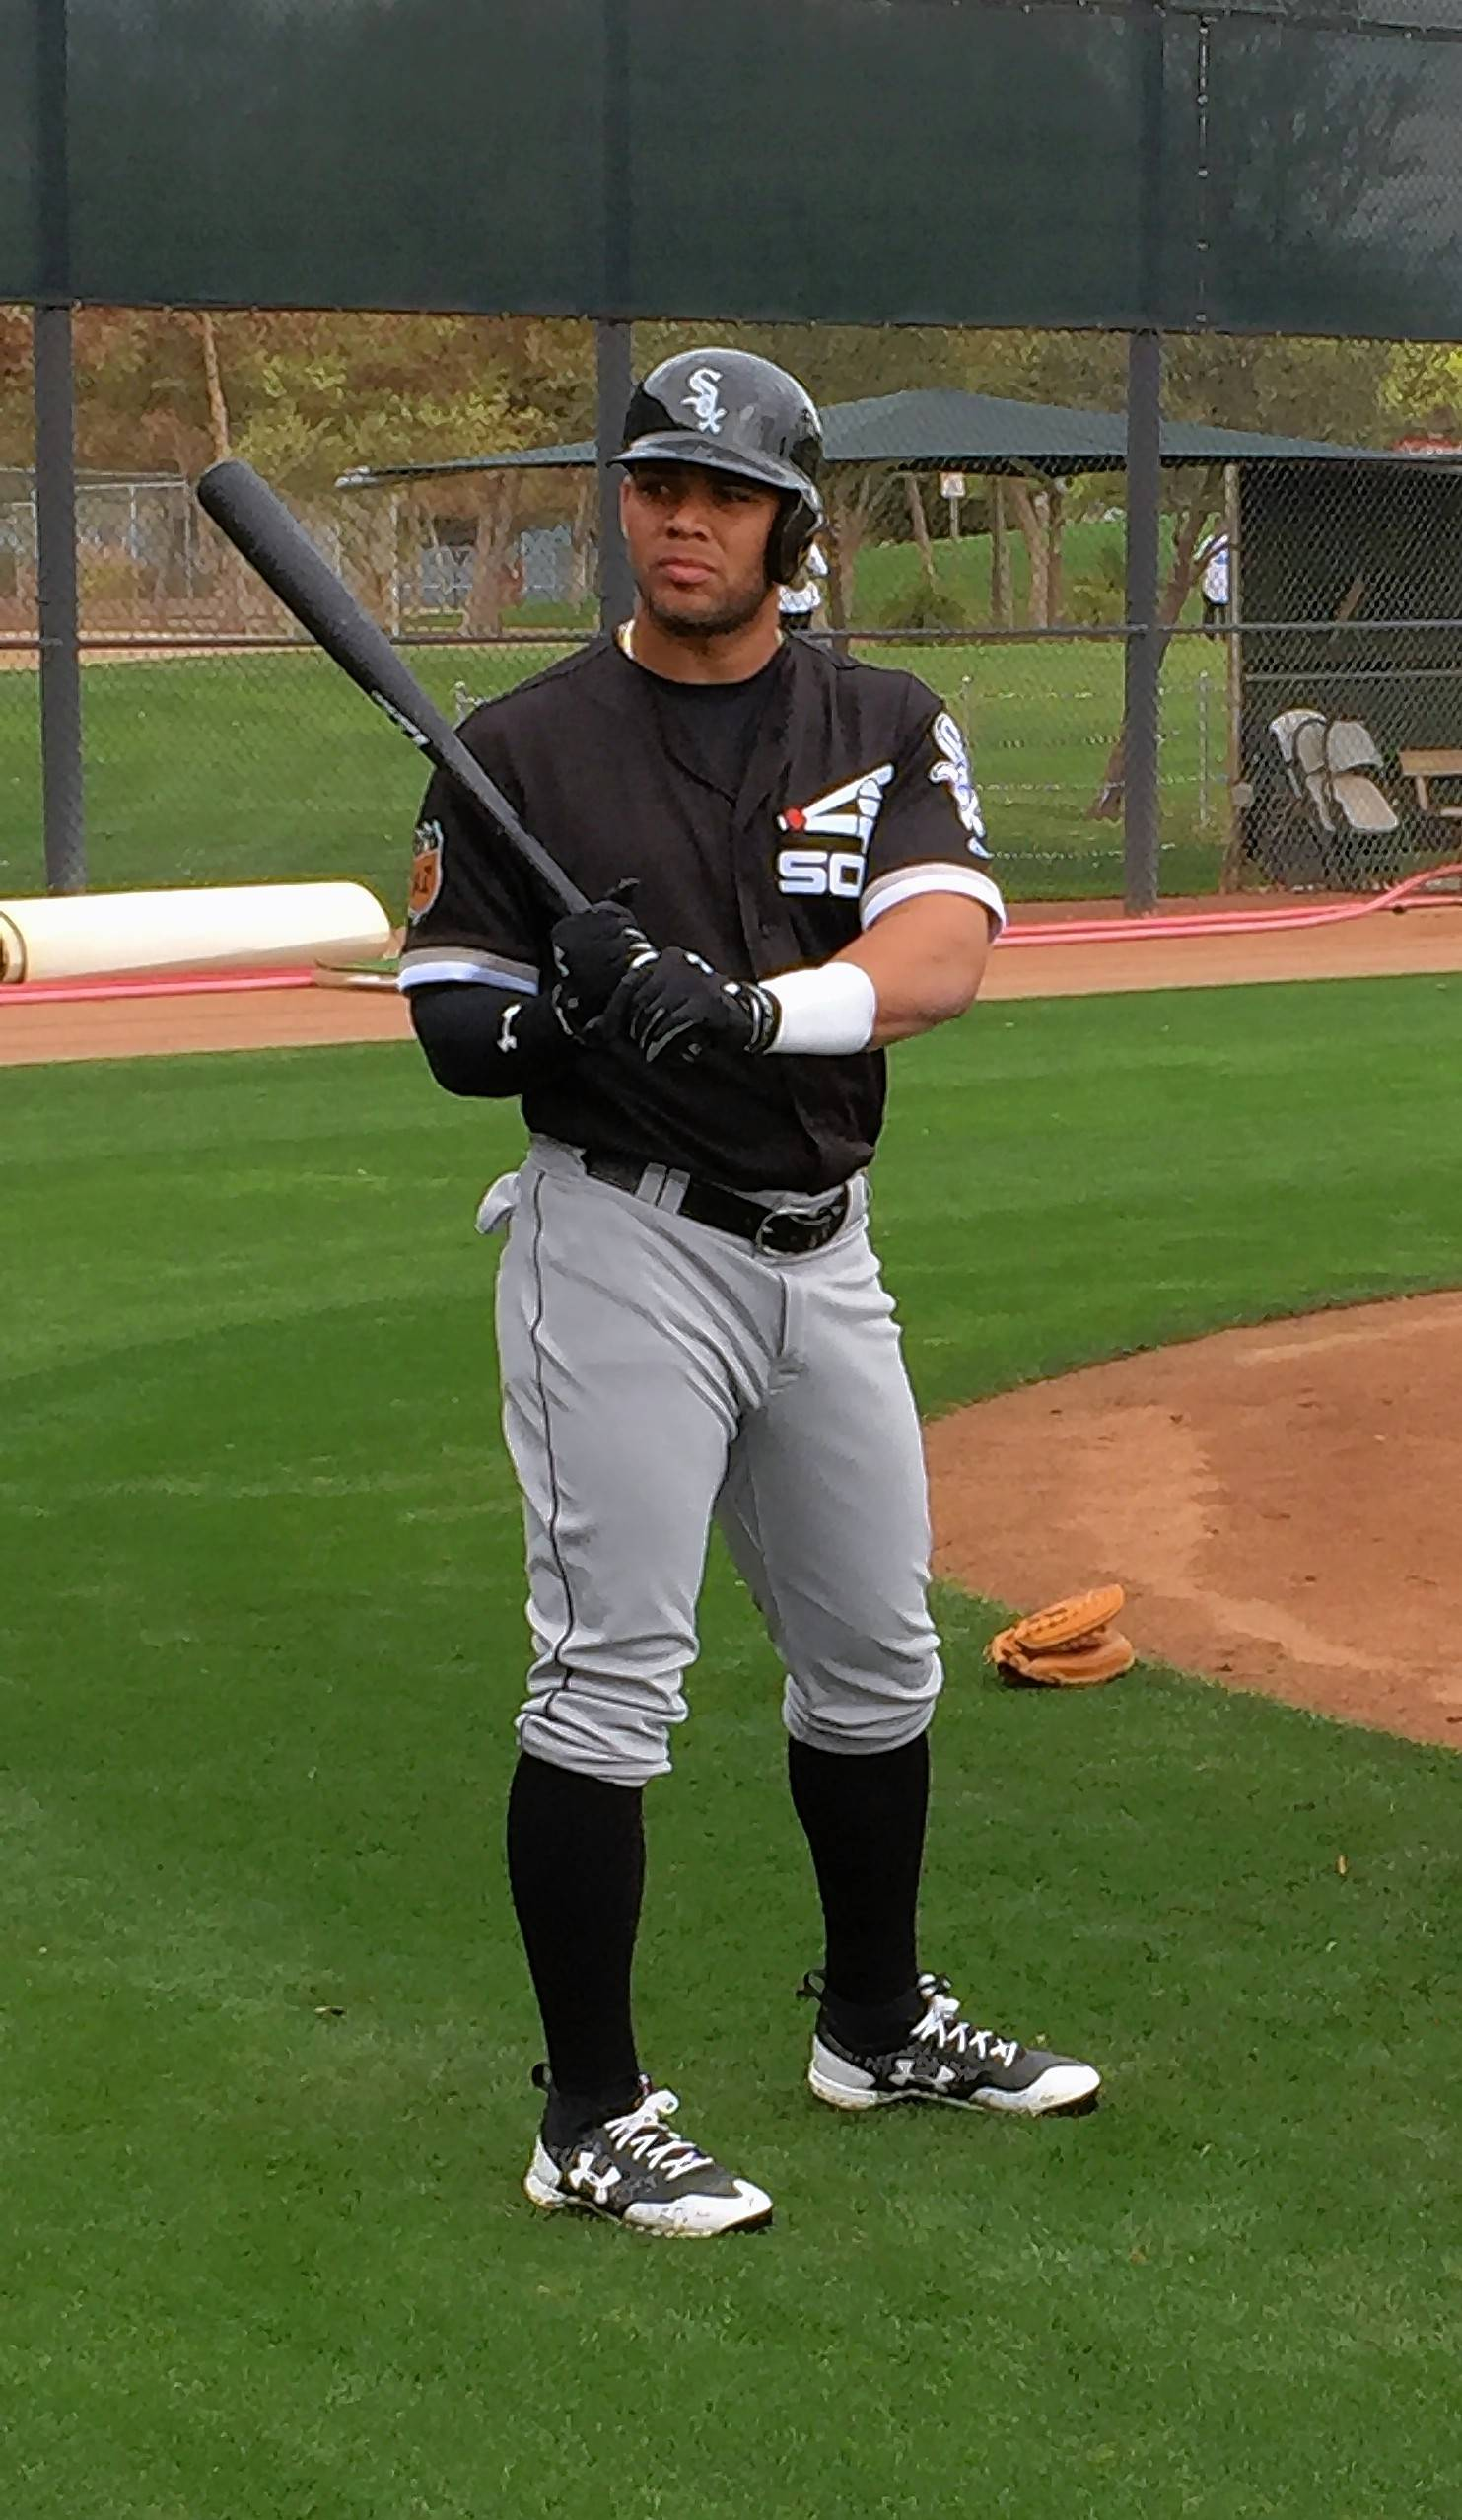 Yoan Moncada was acquired by the White Sox from Boston in the Chris Sale trade.